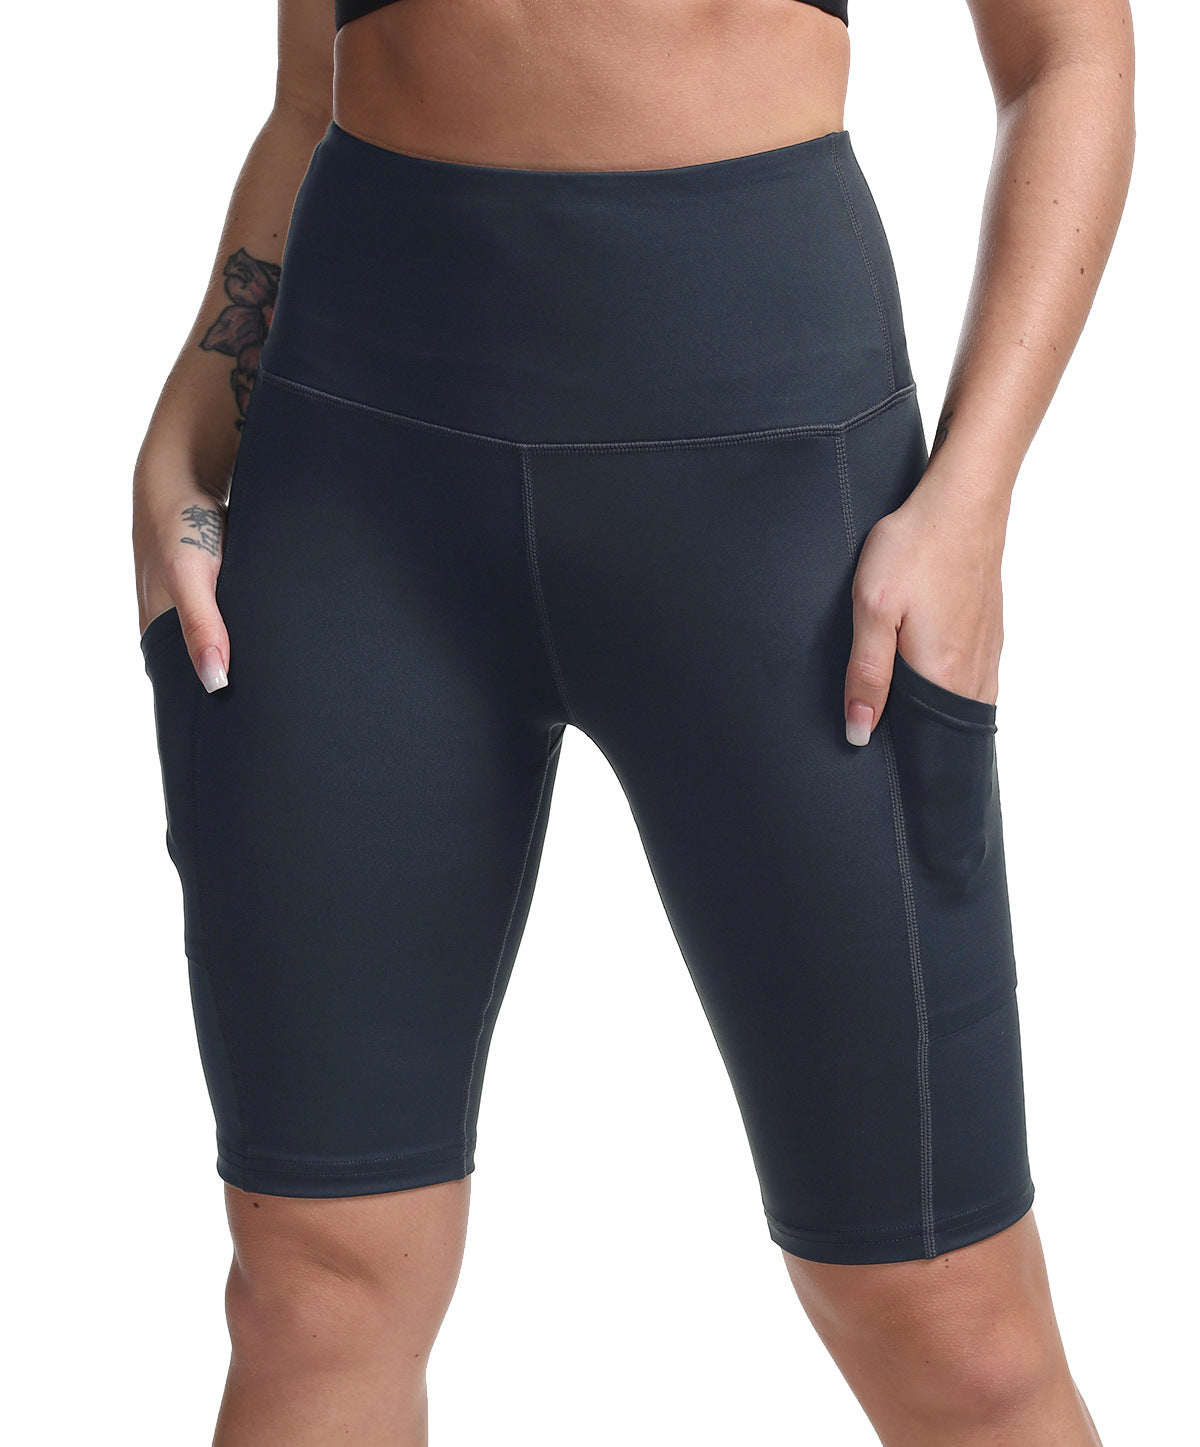 Women High Rise Bike Short With Pocket